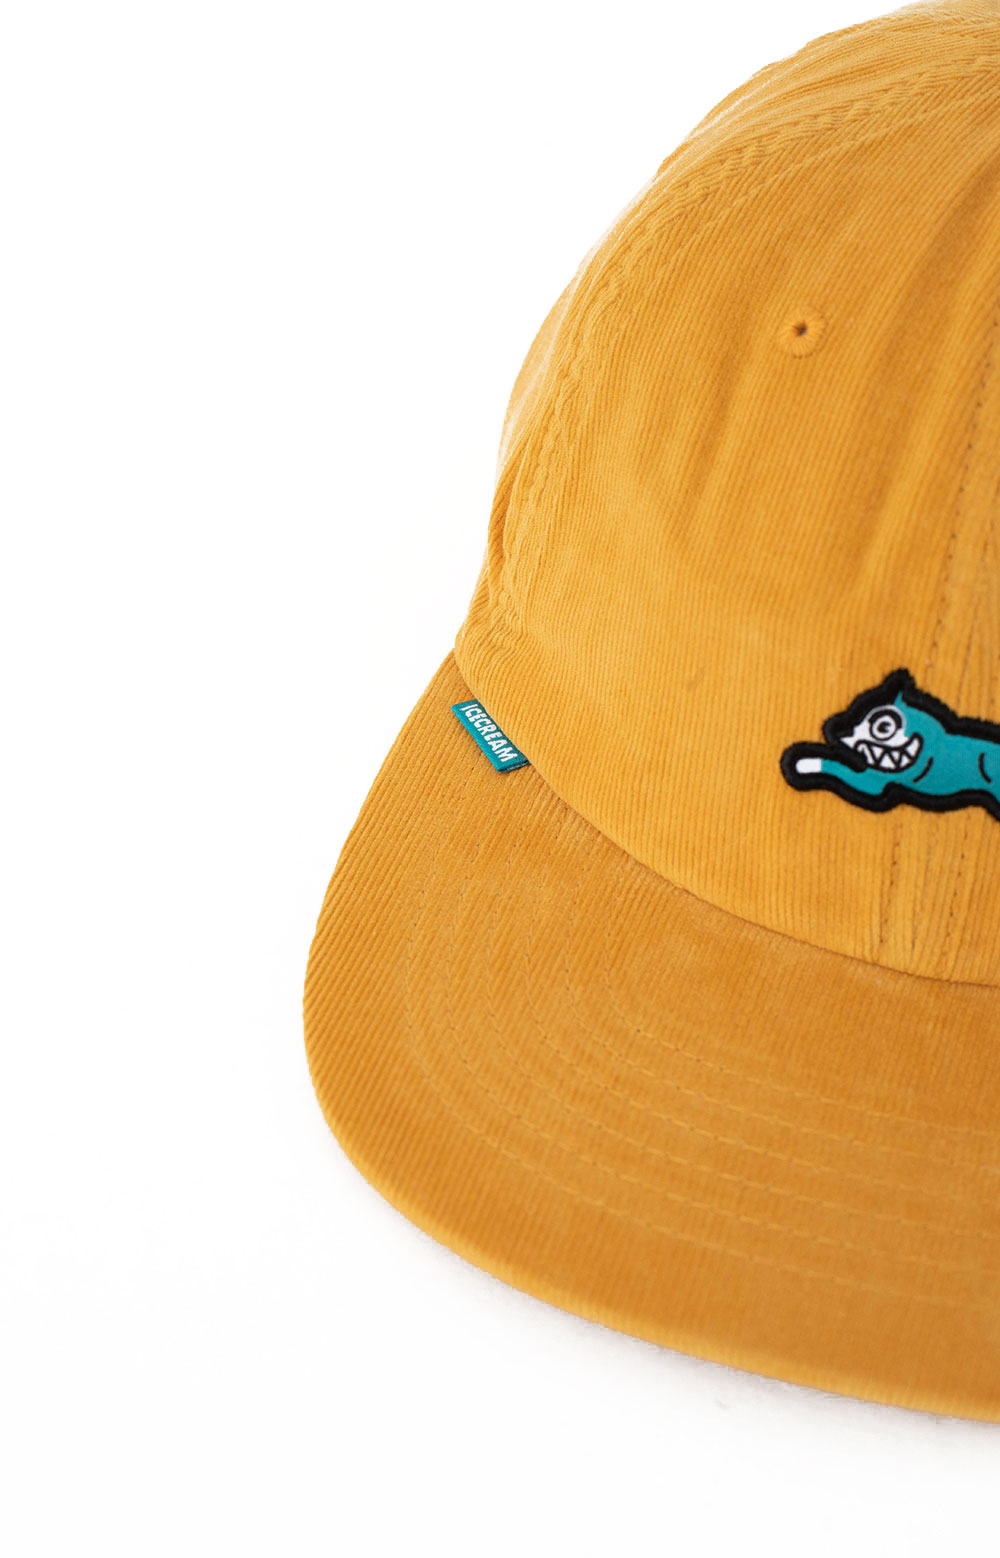 Dawg Polo Cap - Radiant Yellow 3